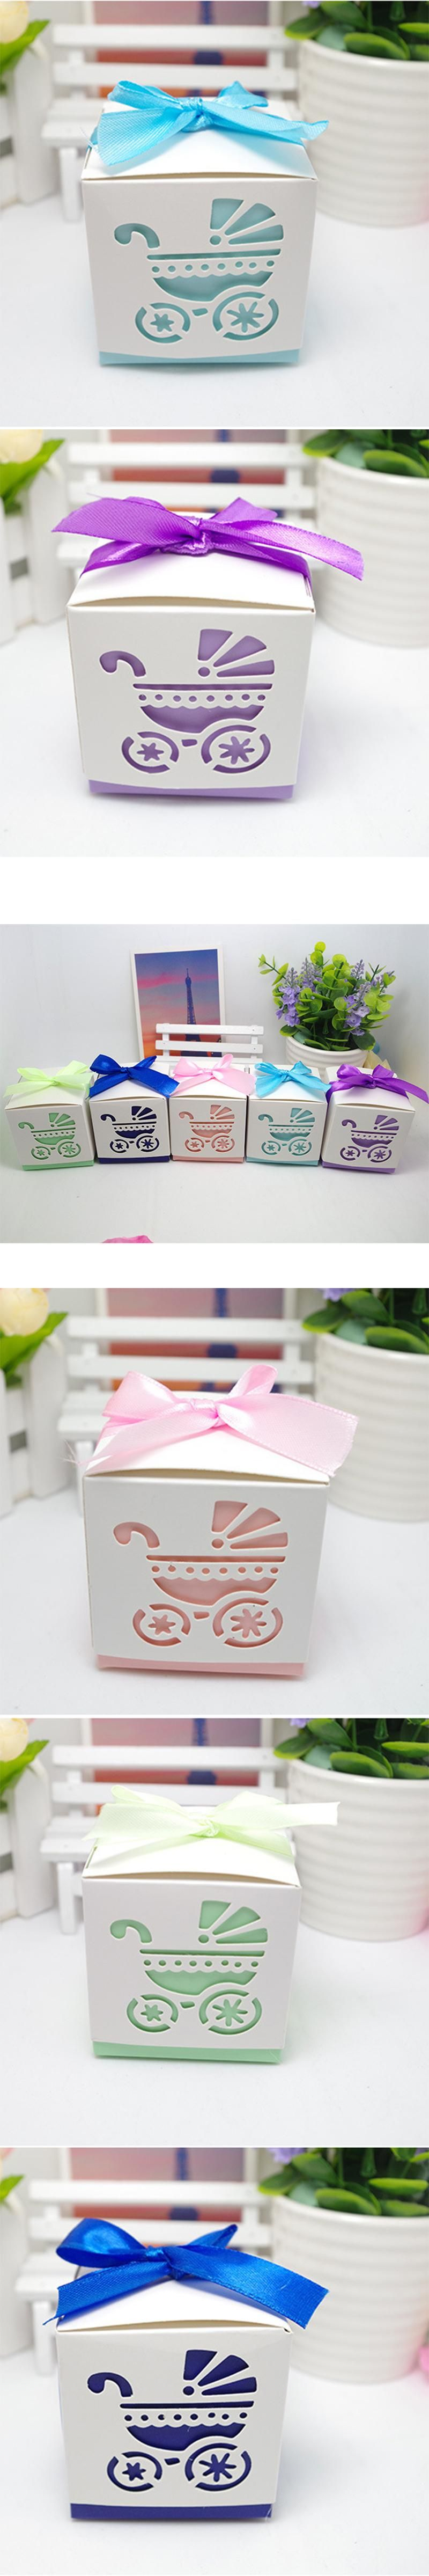 10Pcs Laser Cut Baby carriage Shower Candy Gifts Boxes Favor Boxes ...